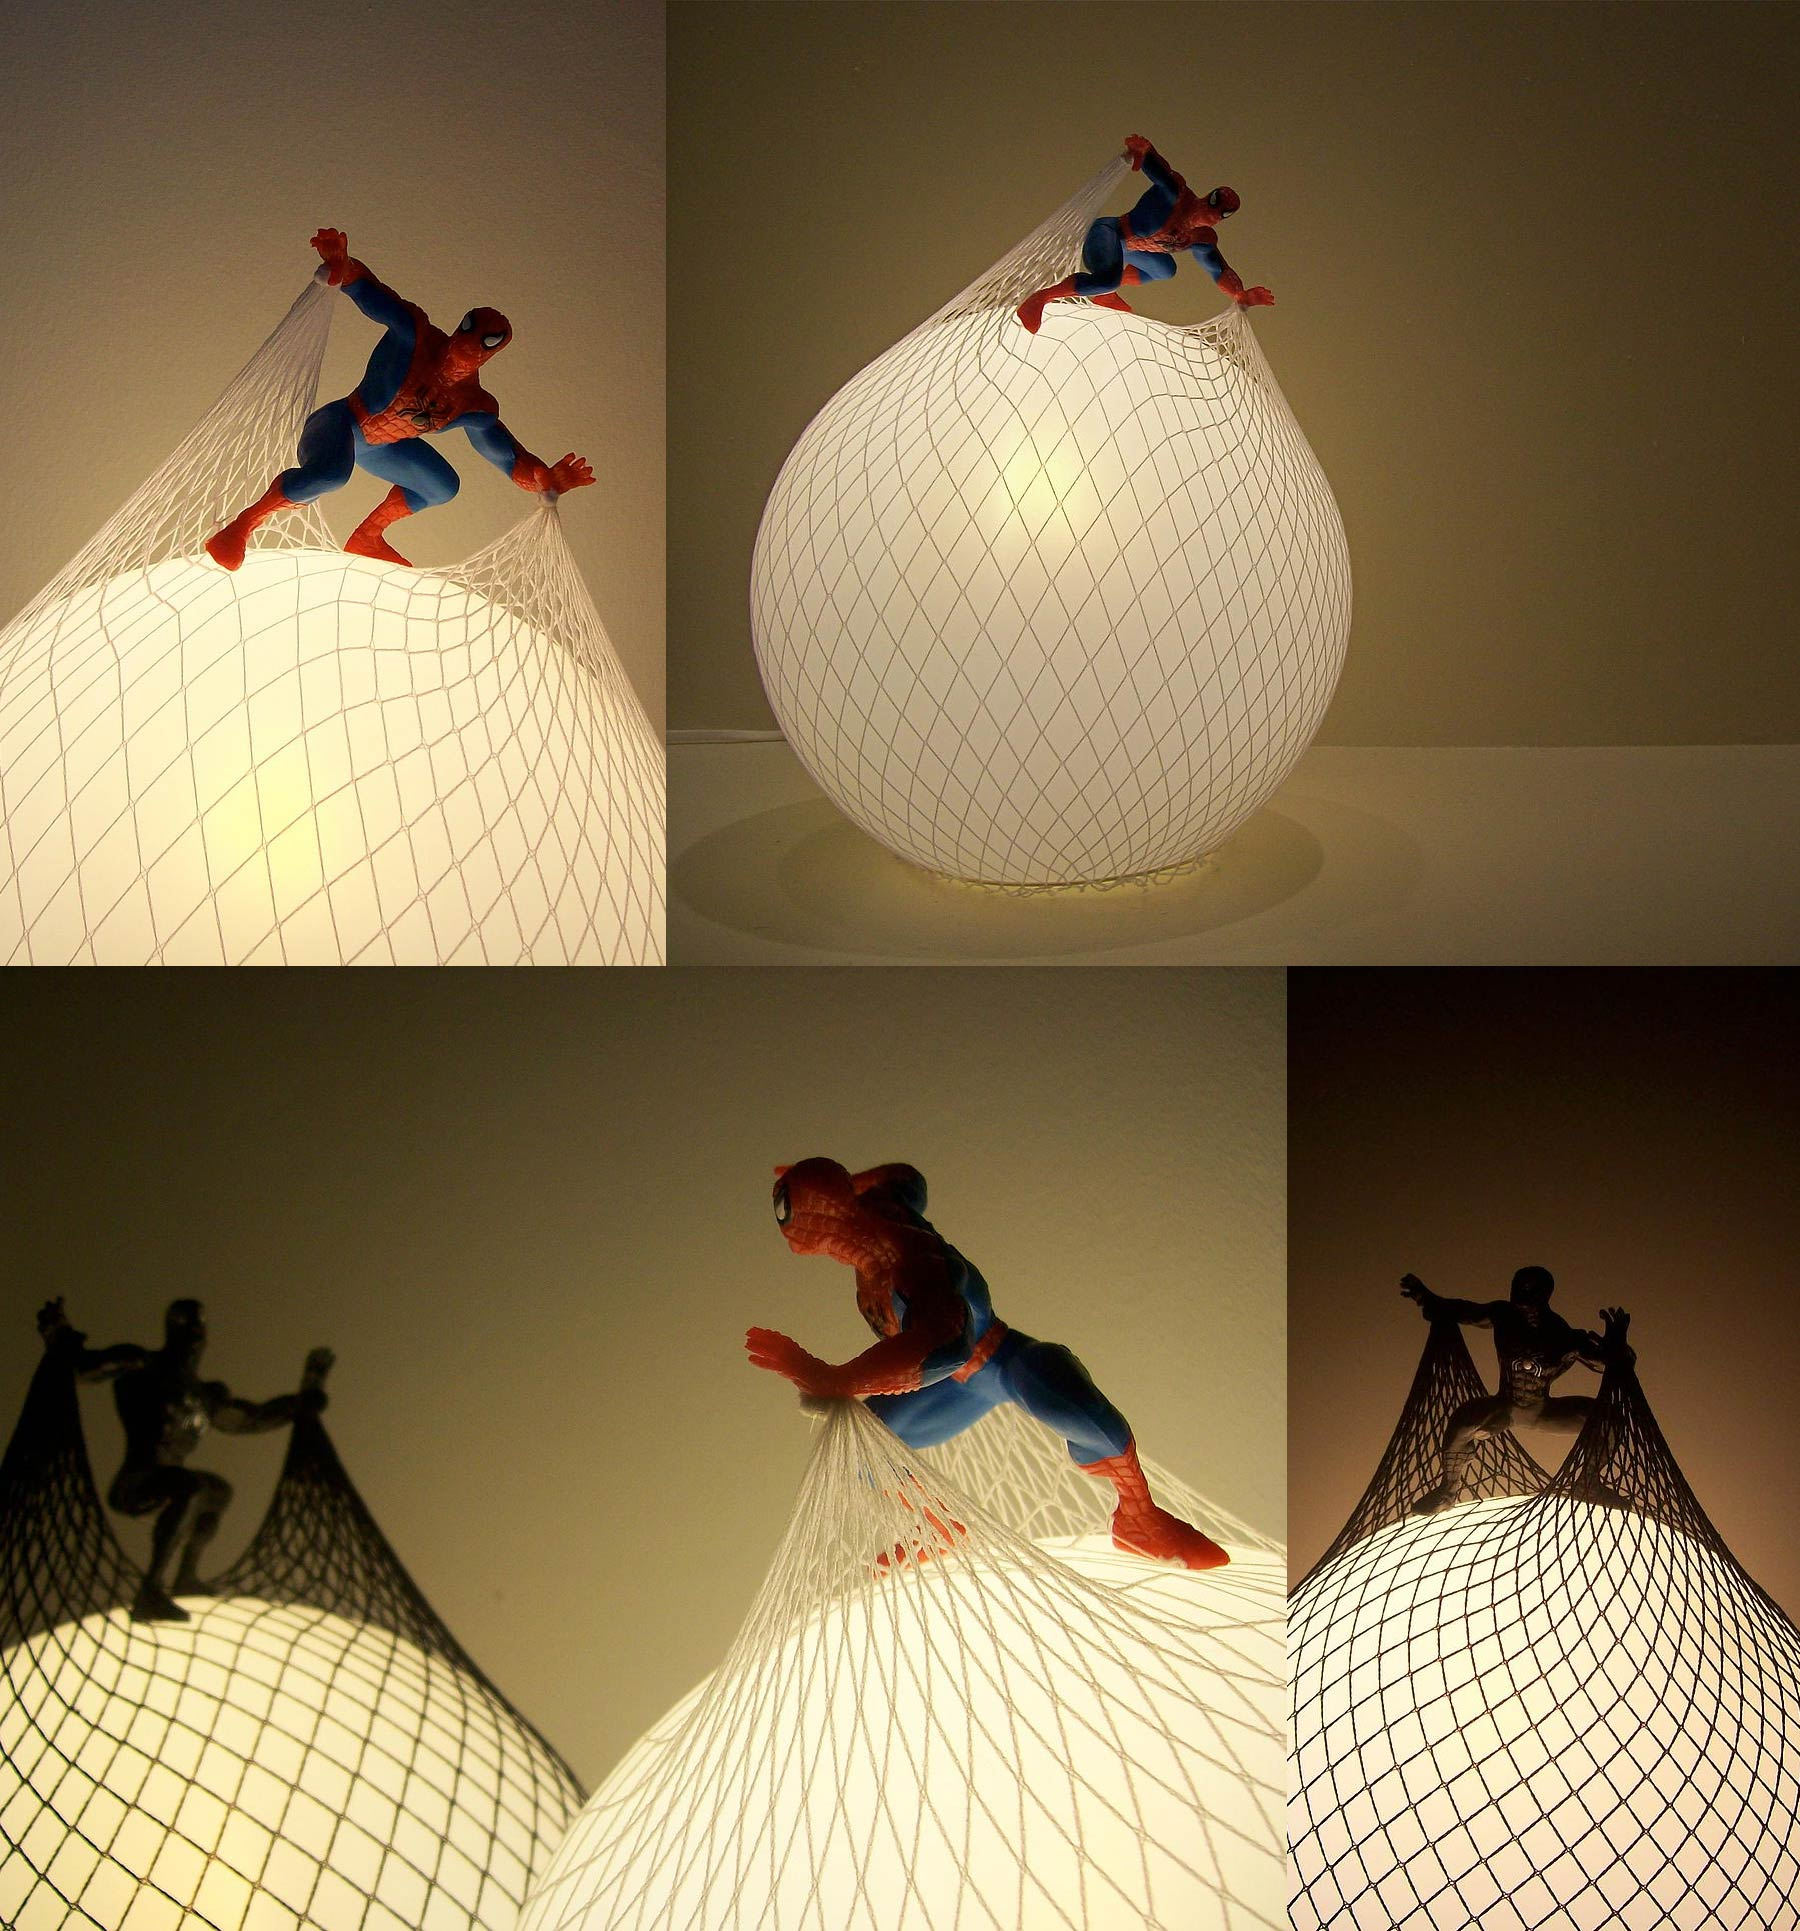 Photos of round lamps covered by a net. The net is attached to a Spiderman action figure placed on top of the lamp.